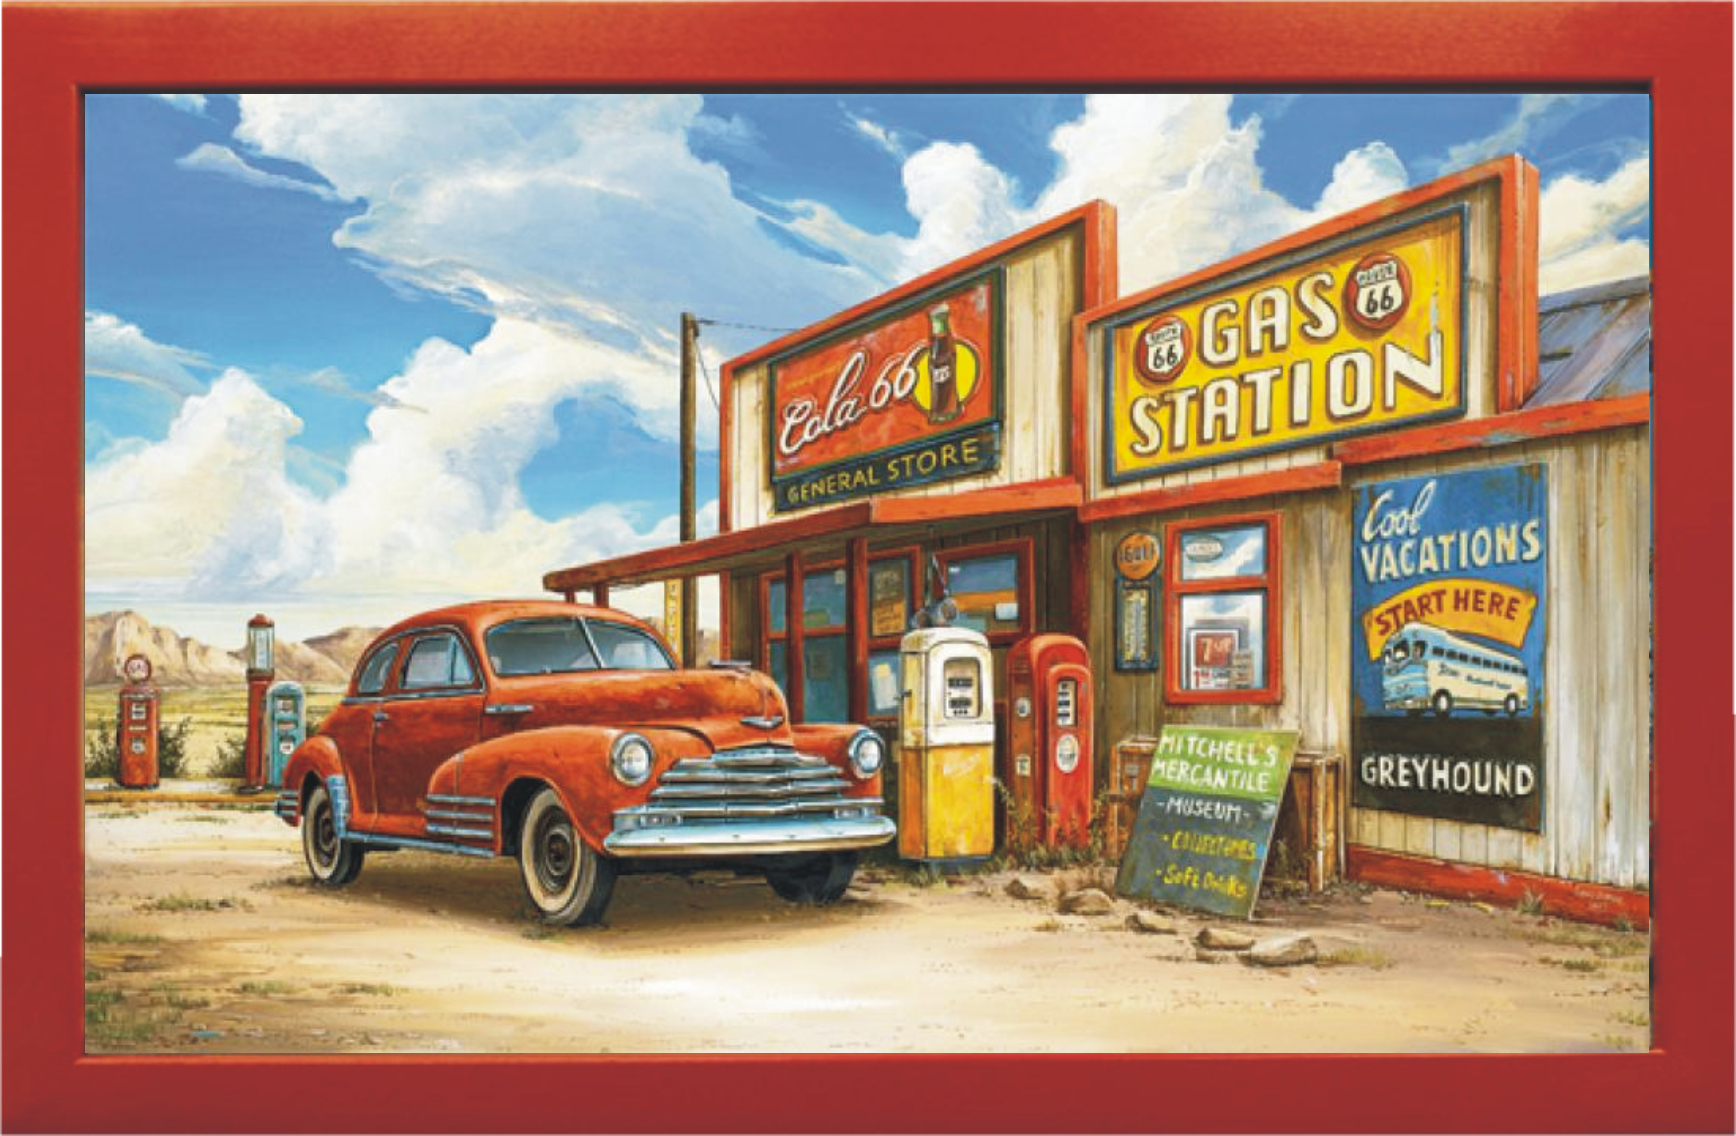 The Cola 66 Store Vintage Art